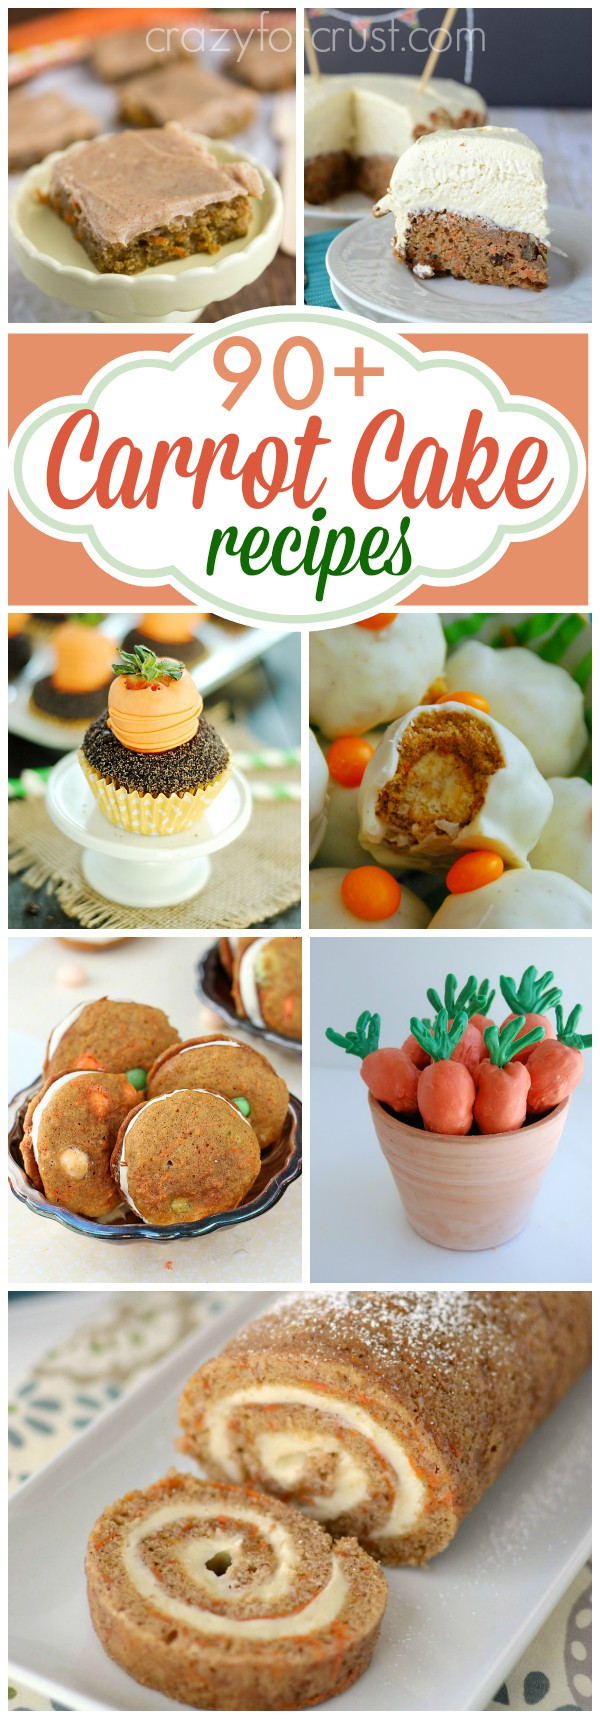 7 photos in a collage showing different Carrot Cake Recipes